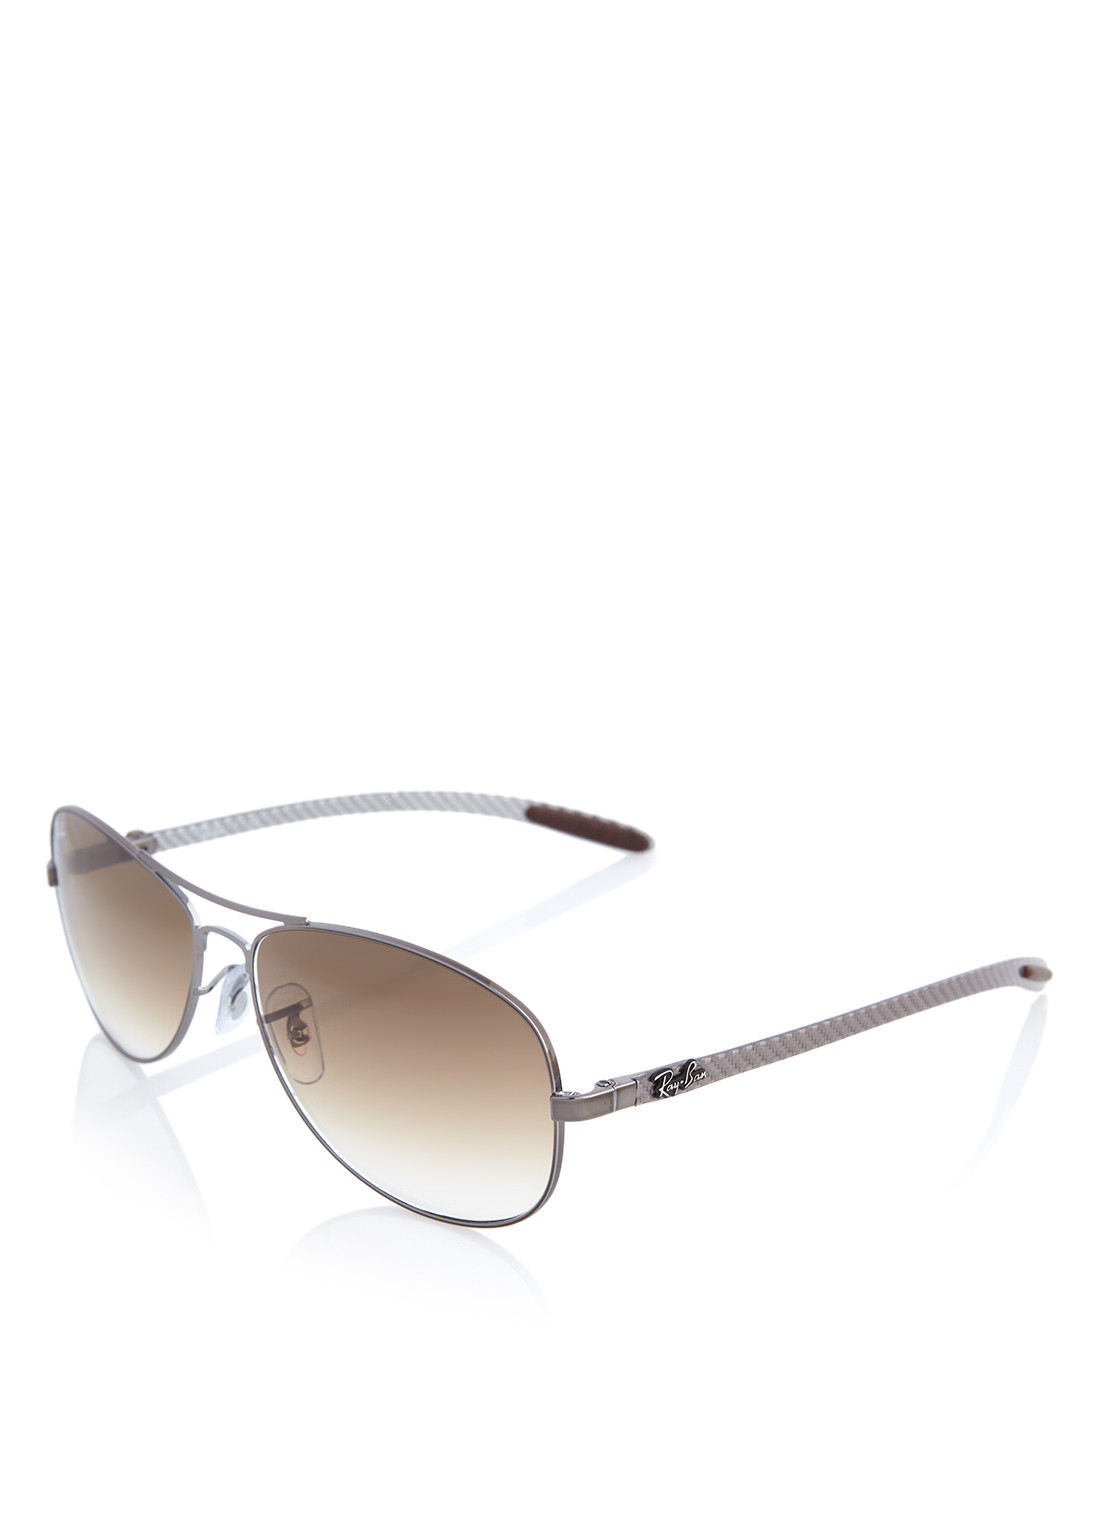 Ray Ban Zonnebril RB8301